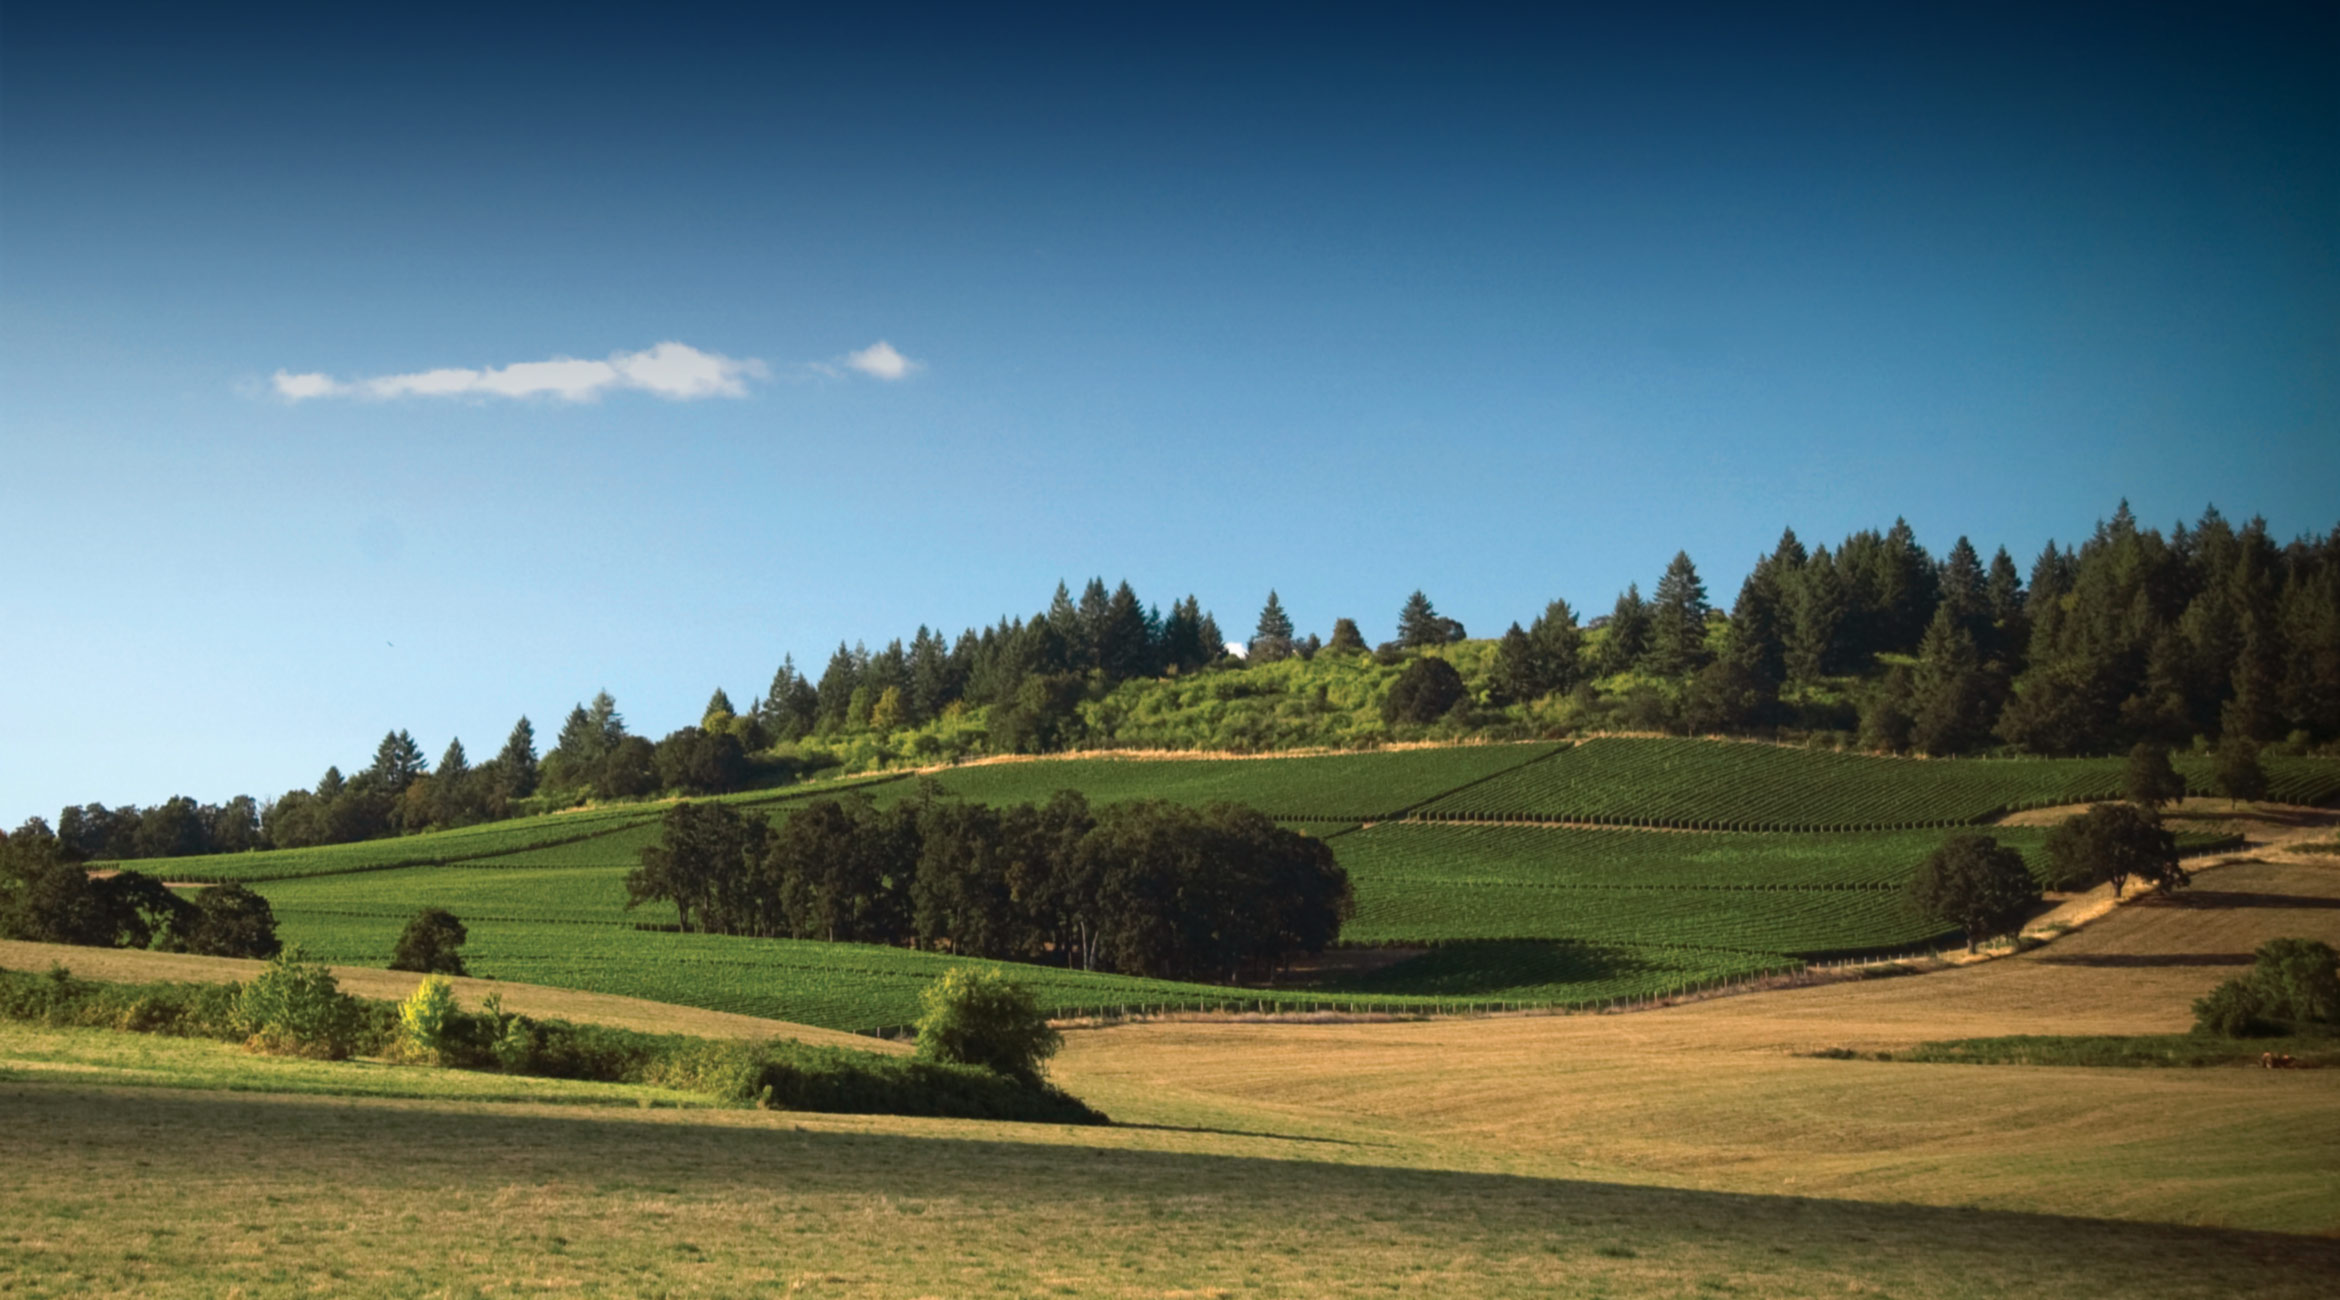 Overlooking Willamette Valley Vineyard in Summer